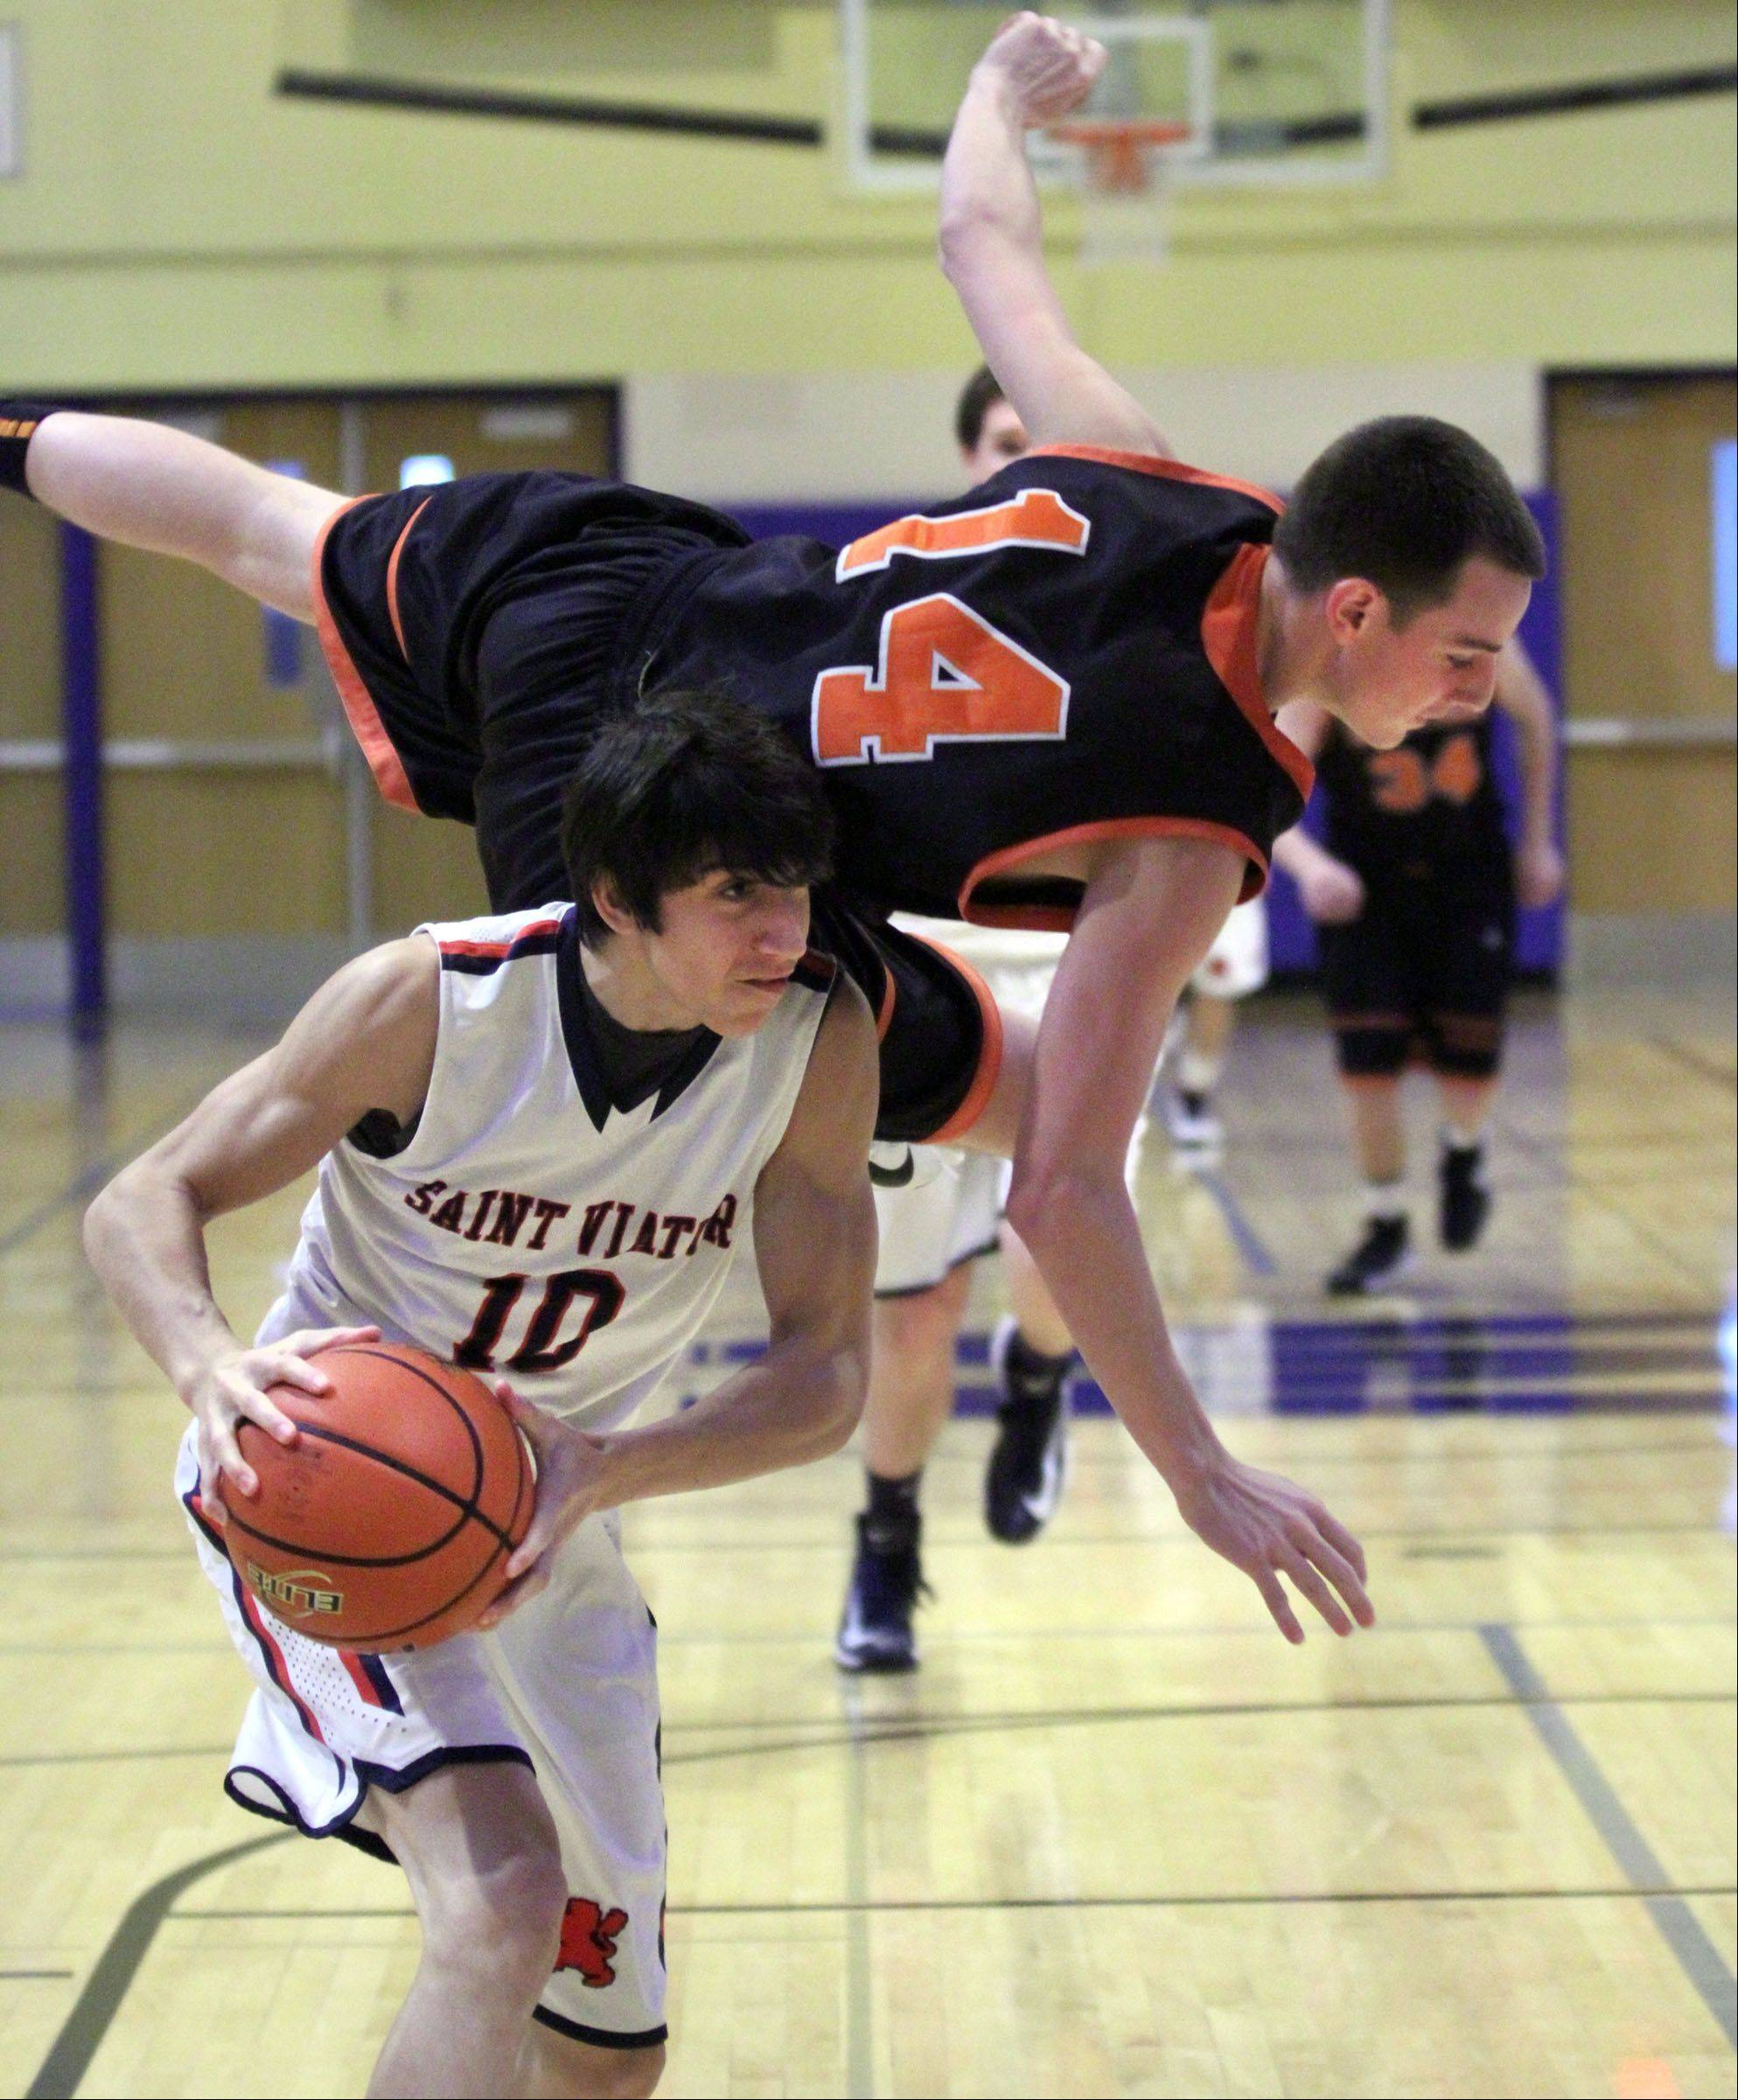 While trying to block a shot Libertyville defender Drew Cayce falls over the back of St. Viator's Robert Grant at the 35th annual Hardwood Classic in Wheeling on Wednesday.